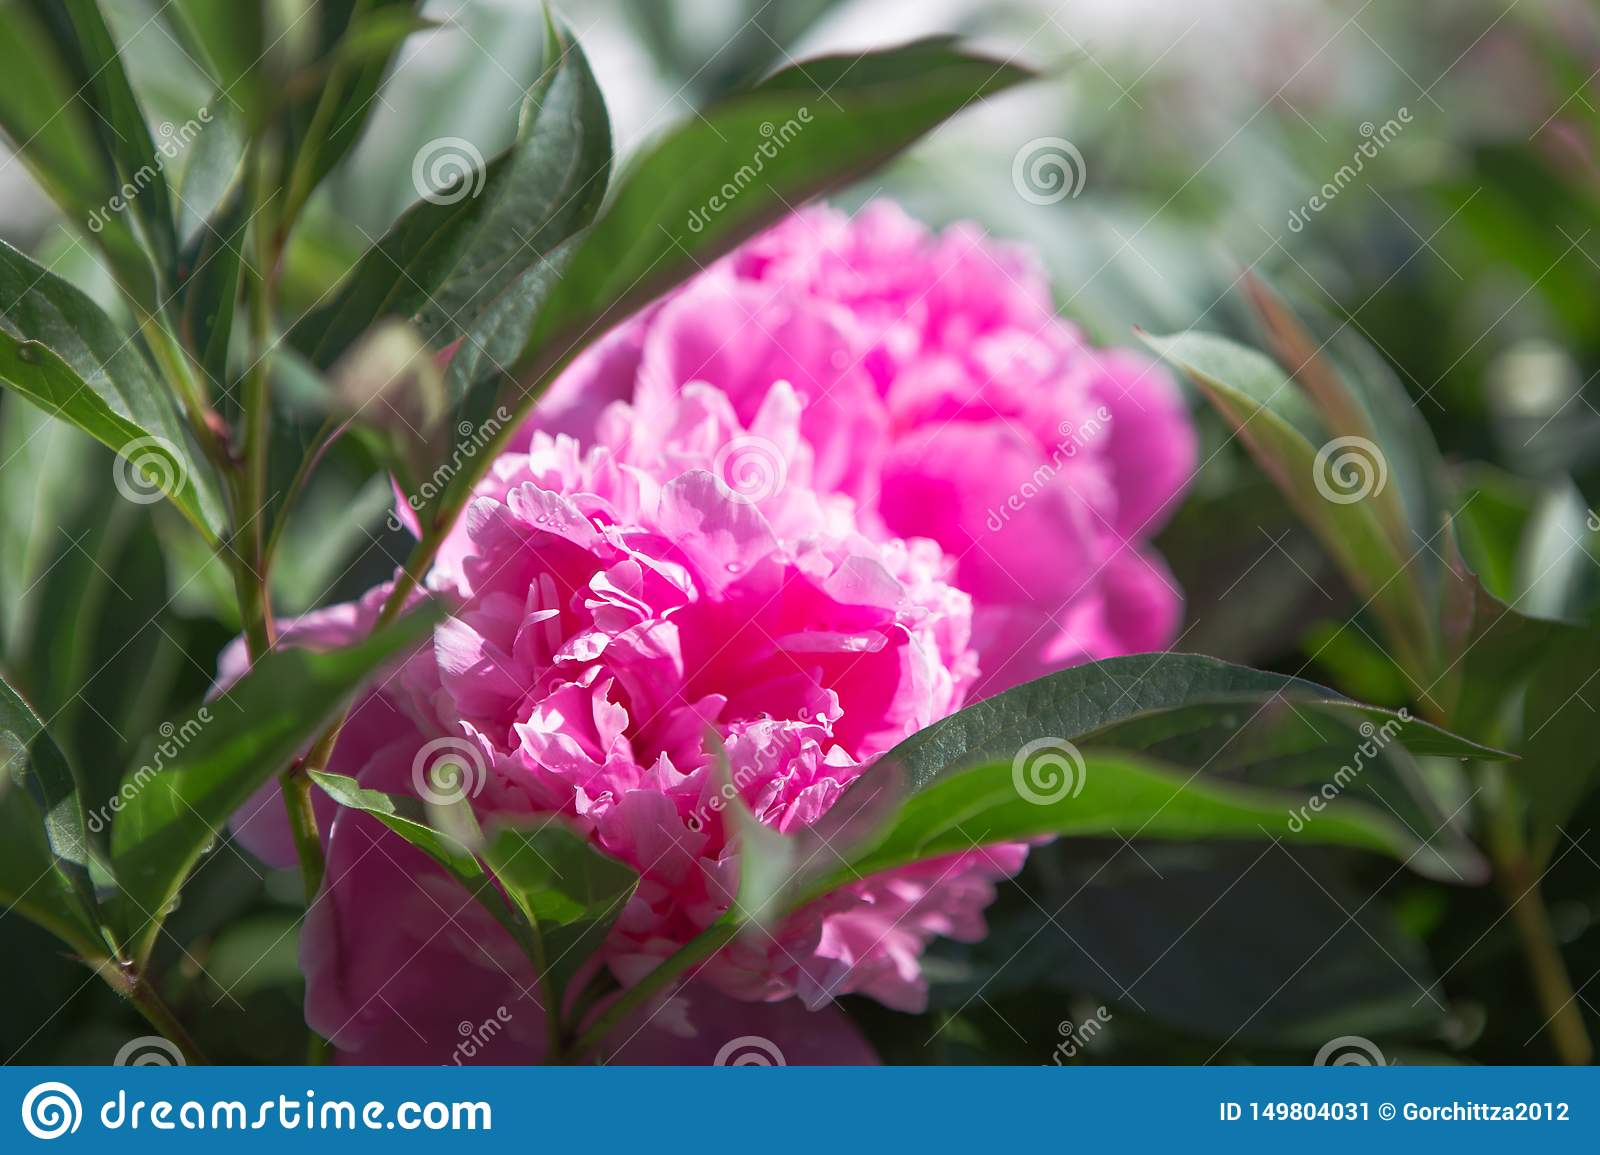 Nature concept - beautiful spring or summer landscape with Pink peony flower on green leaves background. Pink peonies in the garde